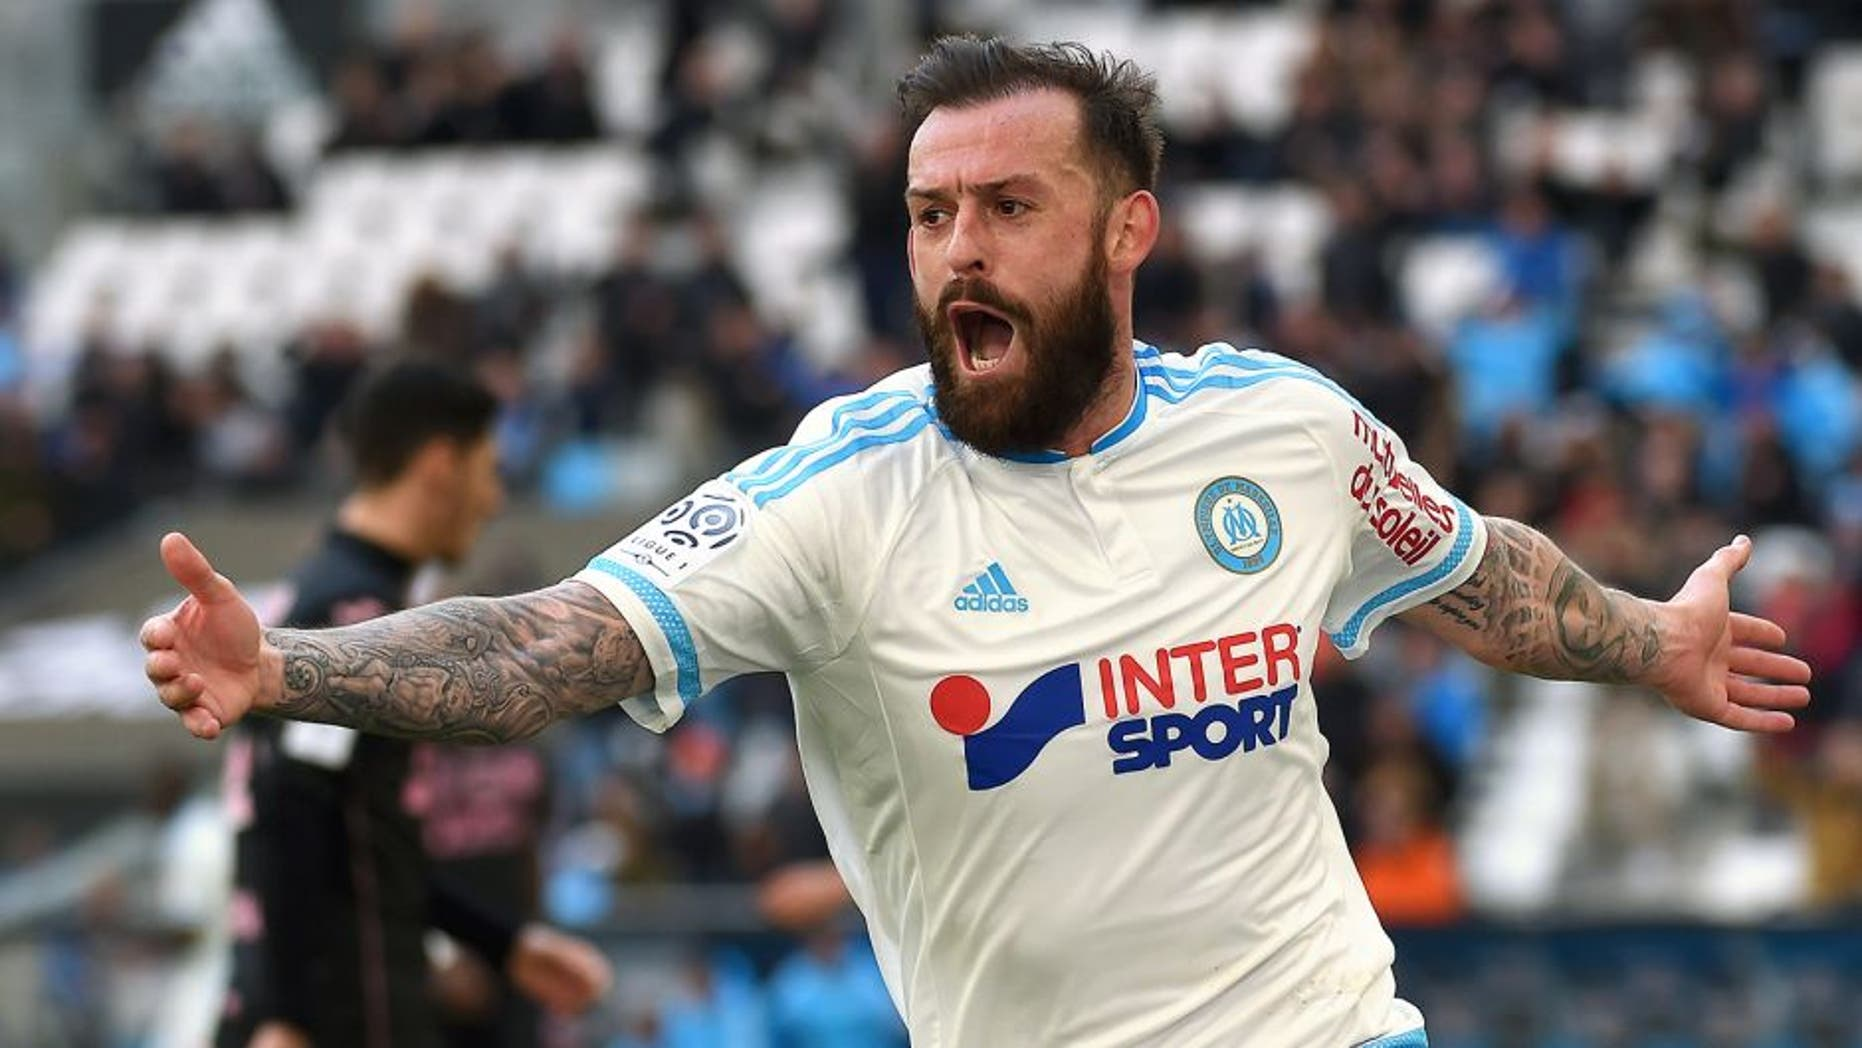 Marseille's Scottish forward Steven Fletcher celebrates after scoring a goal during the French L1 football match between Marseille and Toulouse on March 6, 2016 at the Velodrome stadium in Marseille, southern France. AFP PHOTO / ANNE-CHRISTINE POUJOULAT / AFP / ANNE-CHRISTINE POUJOULAT (Photo credit should read ANNE-CHRISTINE POUJOULAT/AFP/Getty Images)